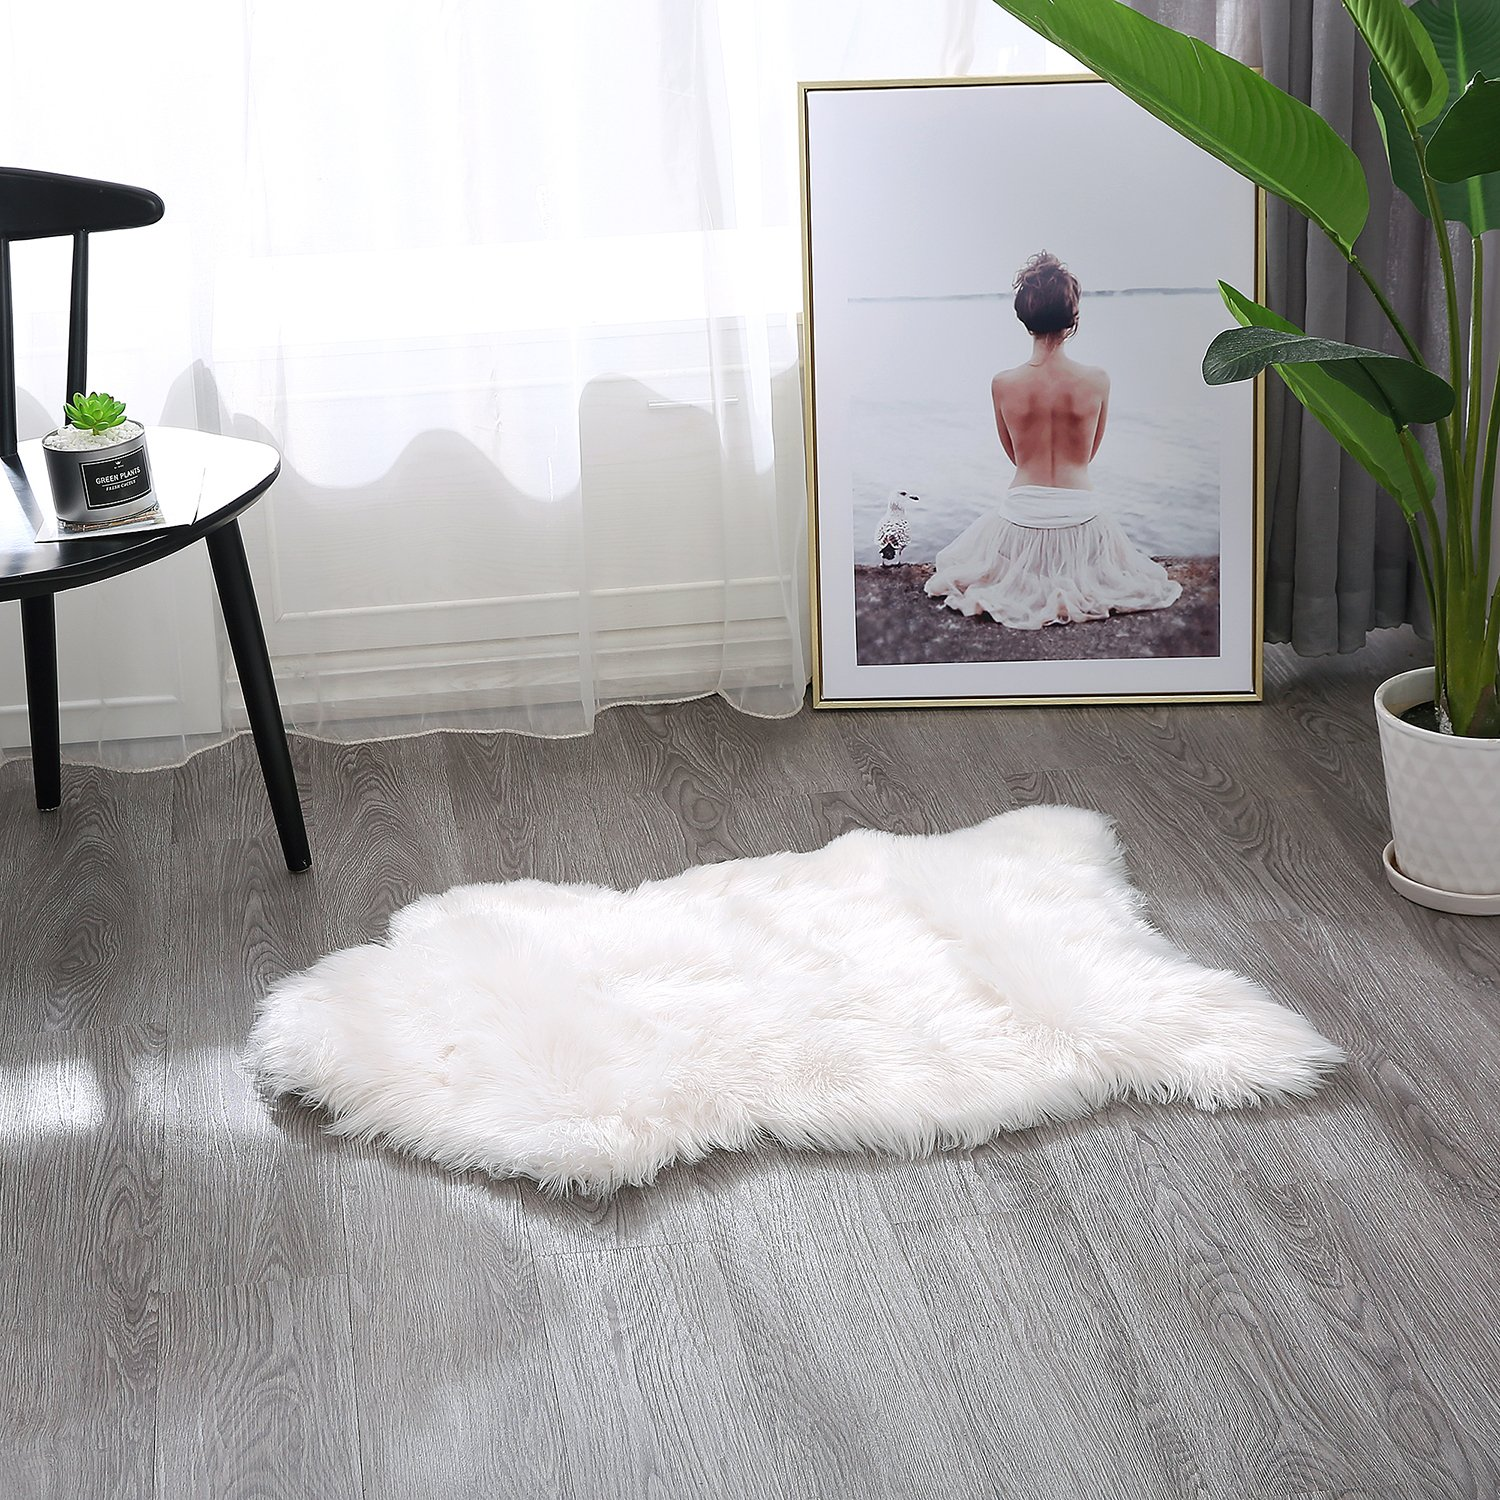 Townssilk s faux fur Sheepskin Fur Hide pelt throw rug runner Seat Cover Chair/Couch/Bed Mat Supersoft Floor Mat Carpet Area Rug(60X90CM, snow white)